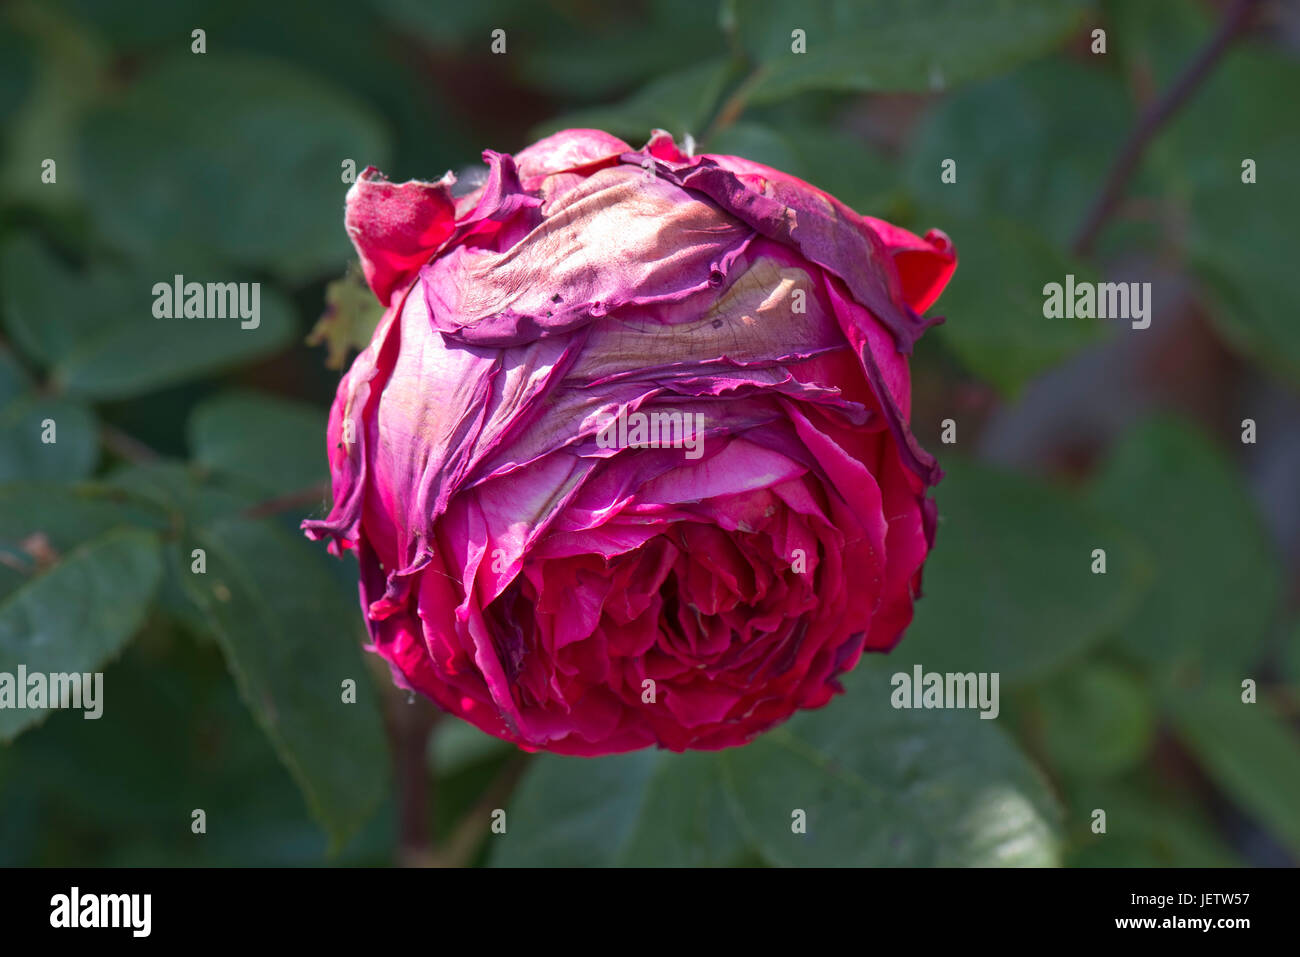 Grey mould, Botrytis cinerea, affecting a large red rose bloom coming into flower after rain and damp weather, Berkshire, - Stock Image